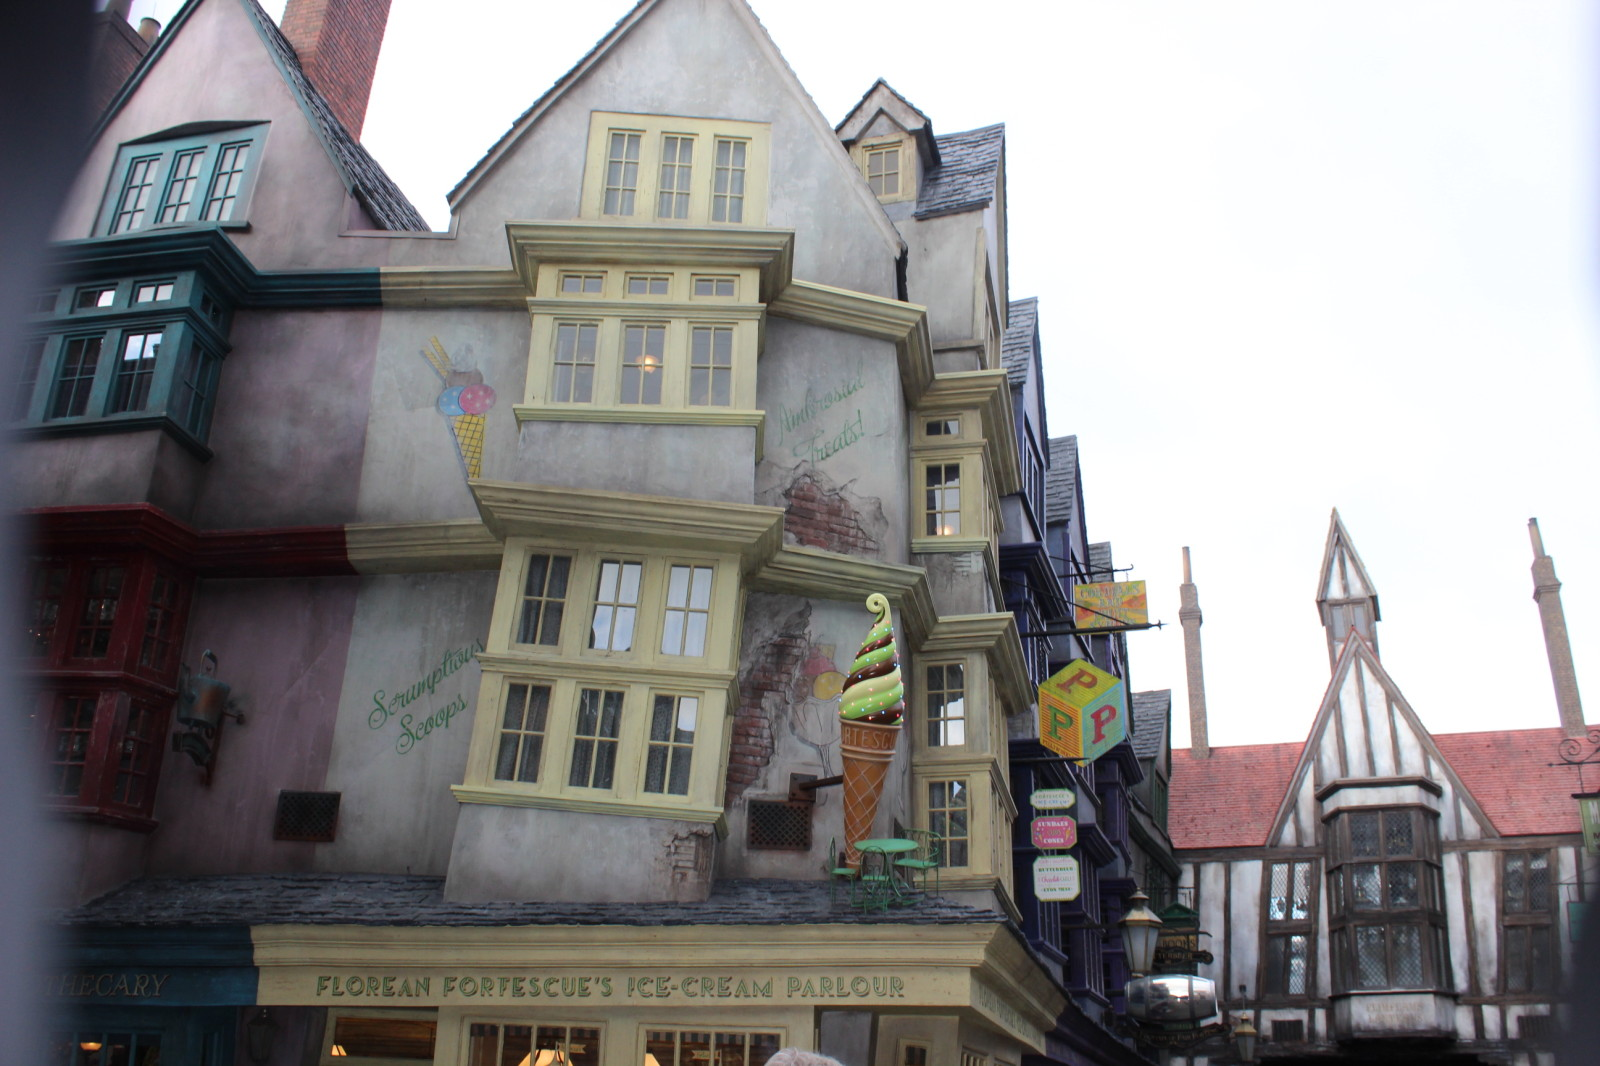 Diagon Alley Introduction - Florean Fortescue's Universal Orlando